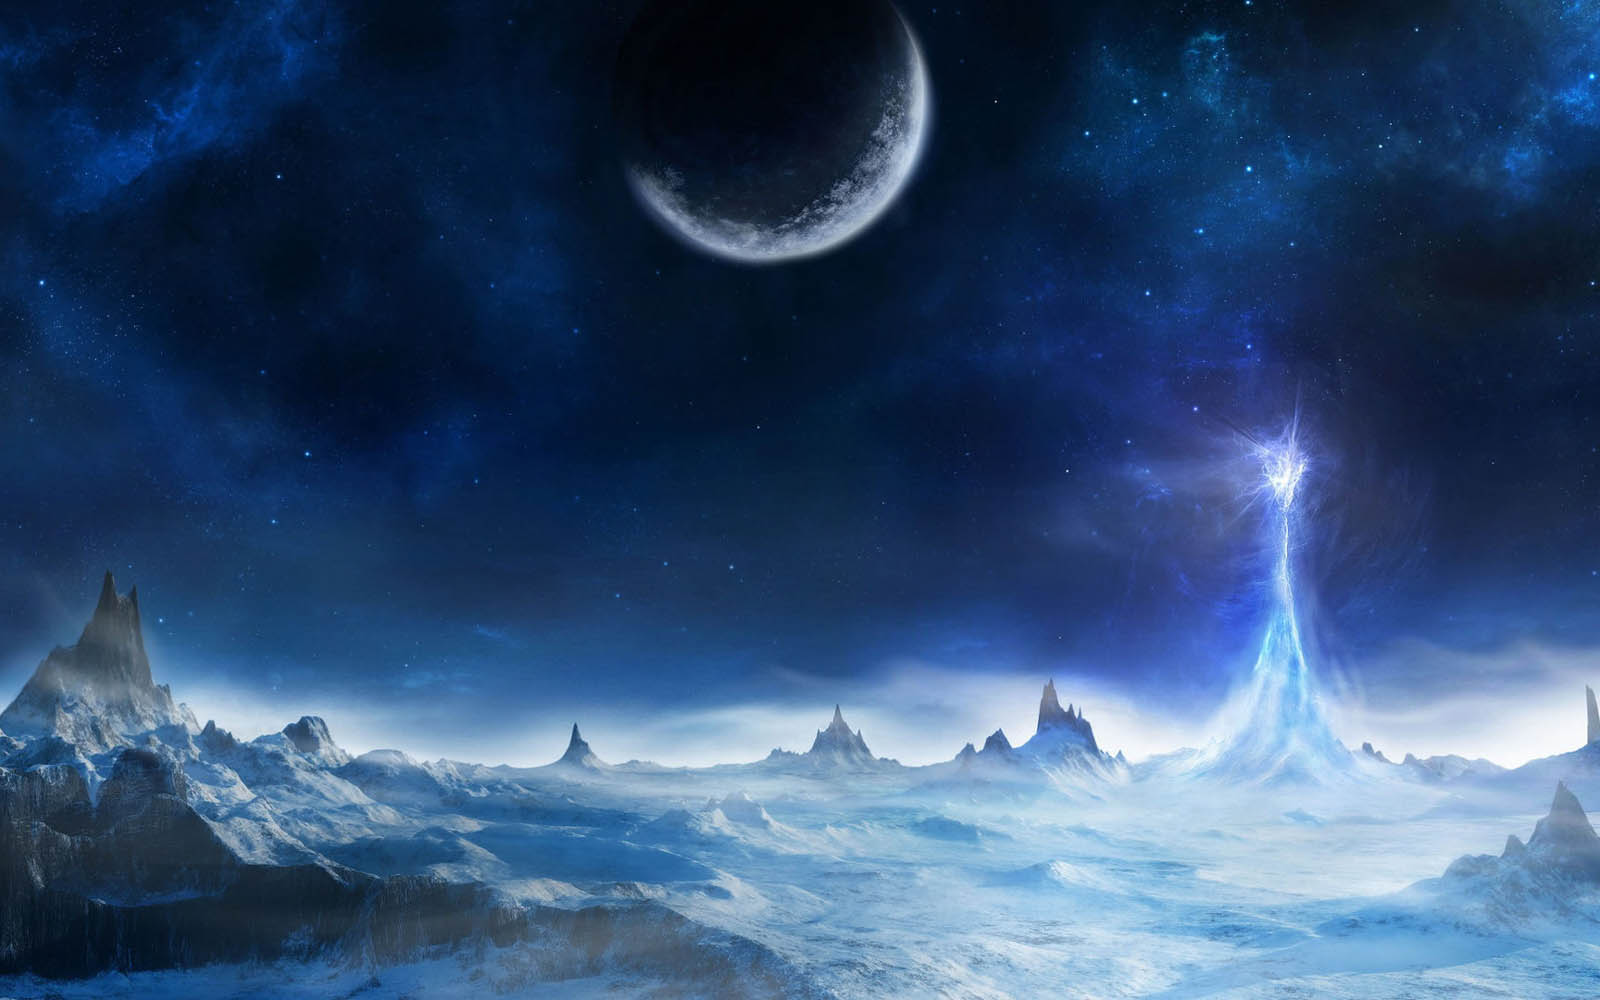 wallpapers fantasy art scenery wallpapers